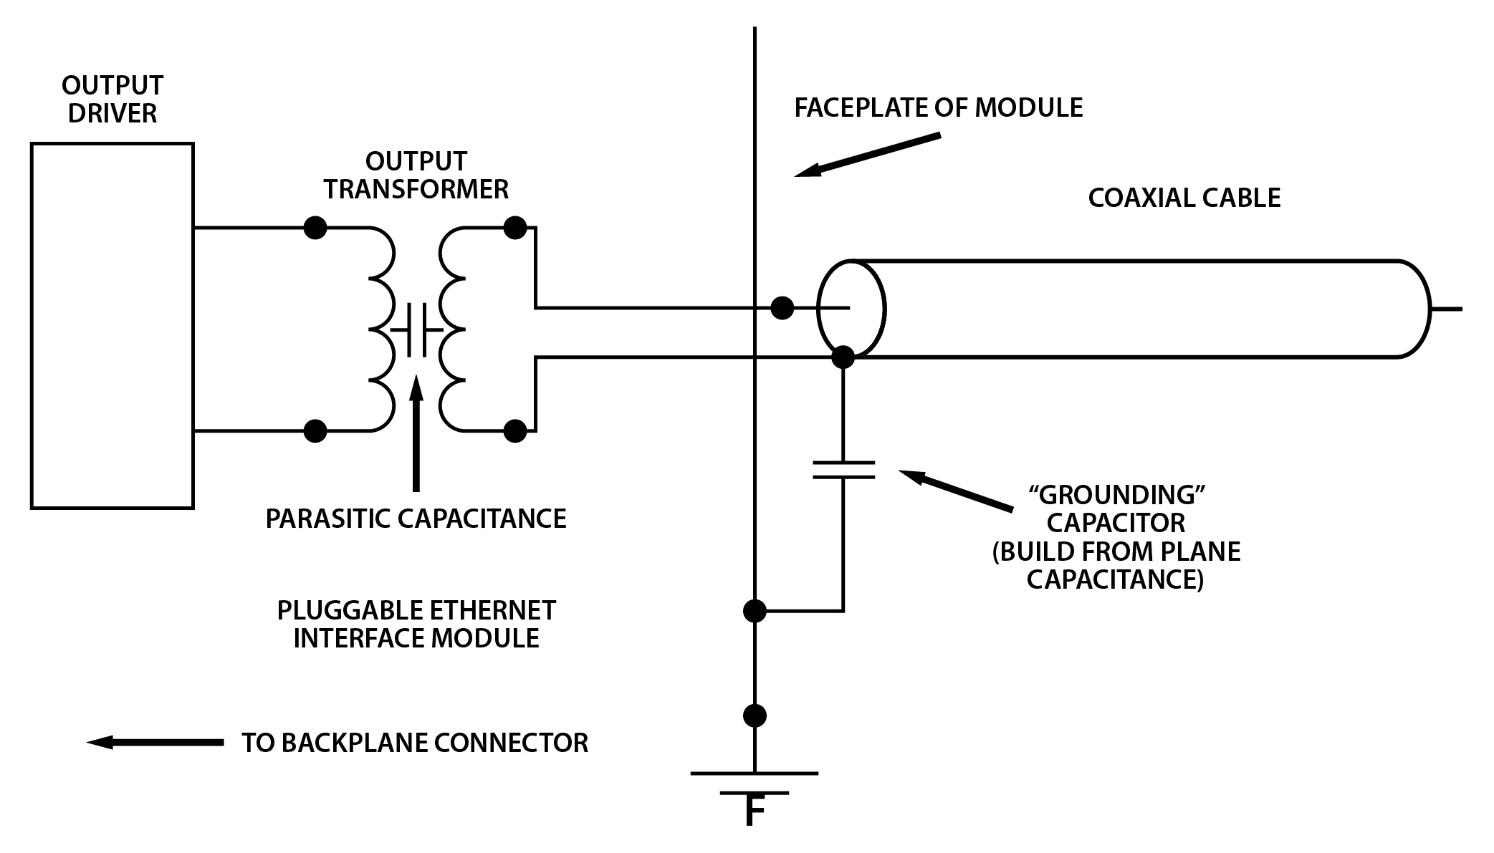 Coaxial cable connected to plane capacitance to the ground and to an output transformer with parasitic capacitance to the output driver